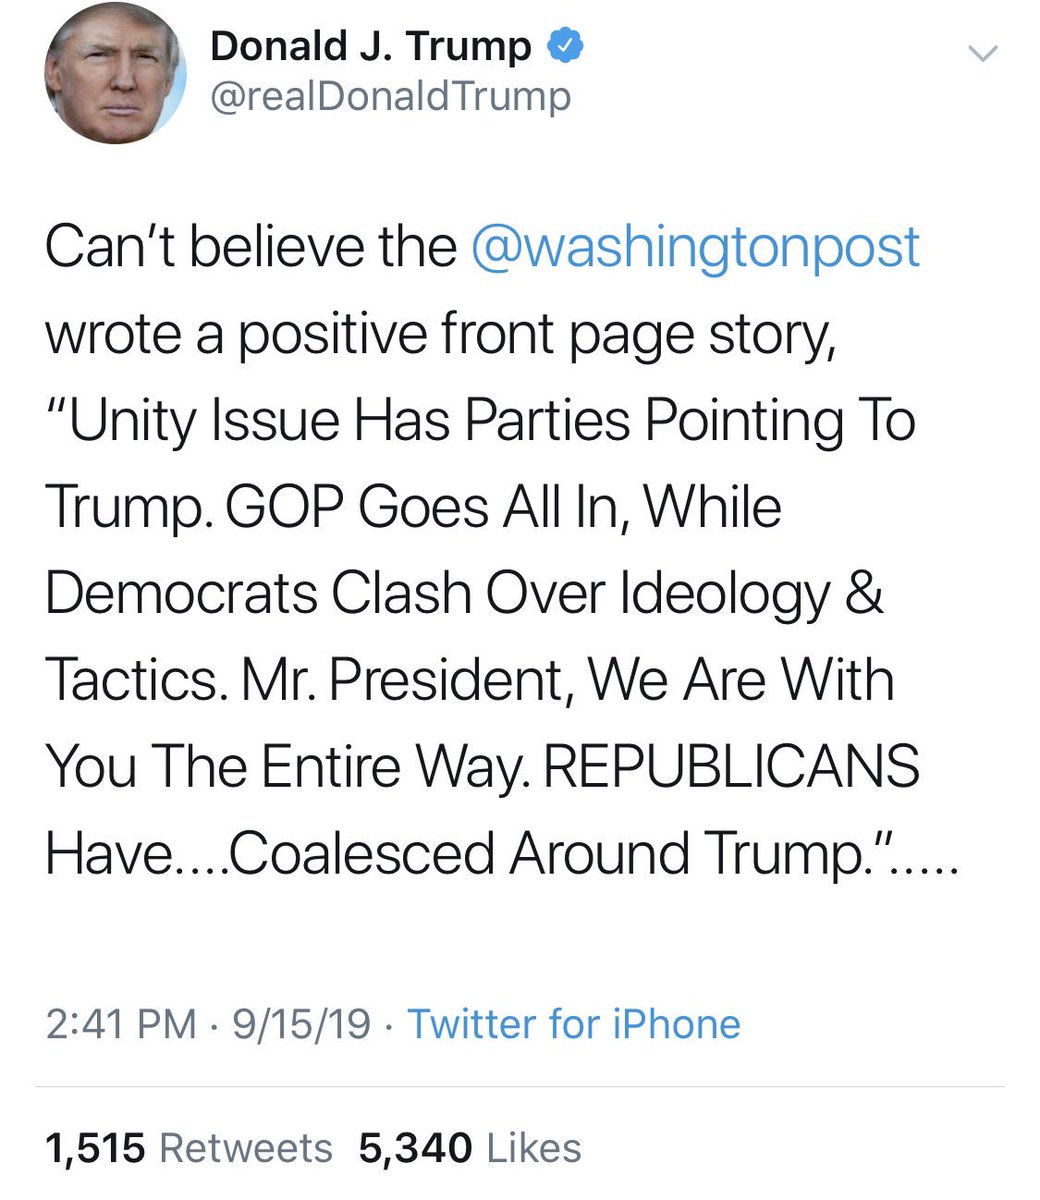 "1) The ""we are with you the entire way"" quote is from Kevin McCarthy, obviously not the Post itself. 2) This is the ""coalesced"" sentence: ""Republicans, meanwhile, have largely coalesced around Trump, but it's far from clear that the president has a winning message for 2020."" https://t.co/Lb3TAZ7tRT"